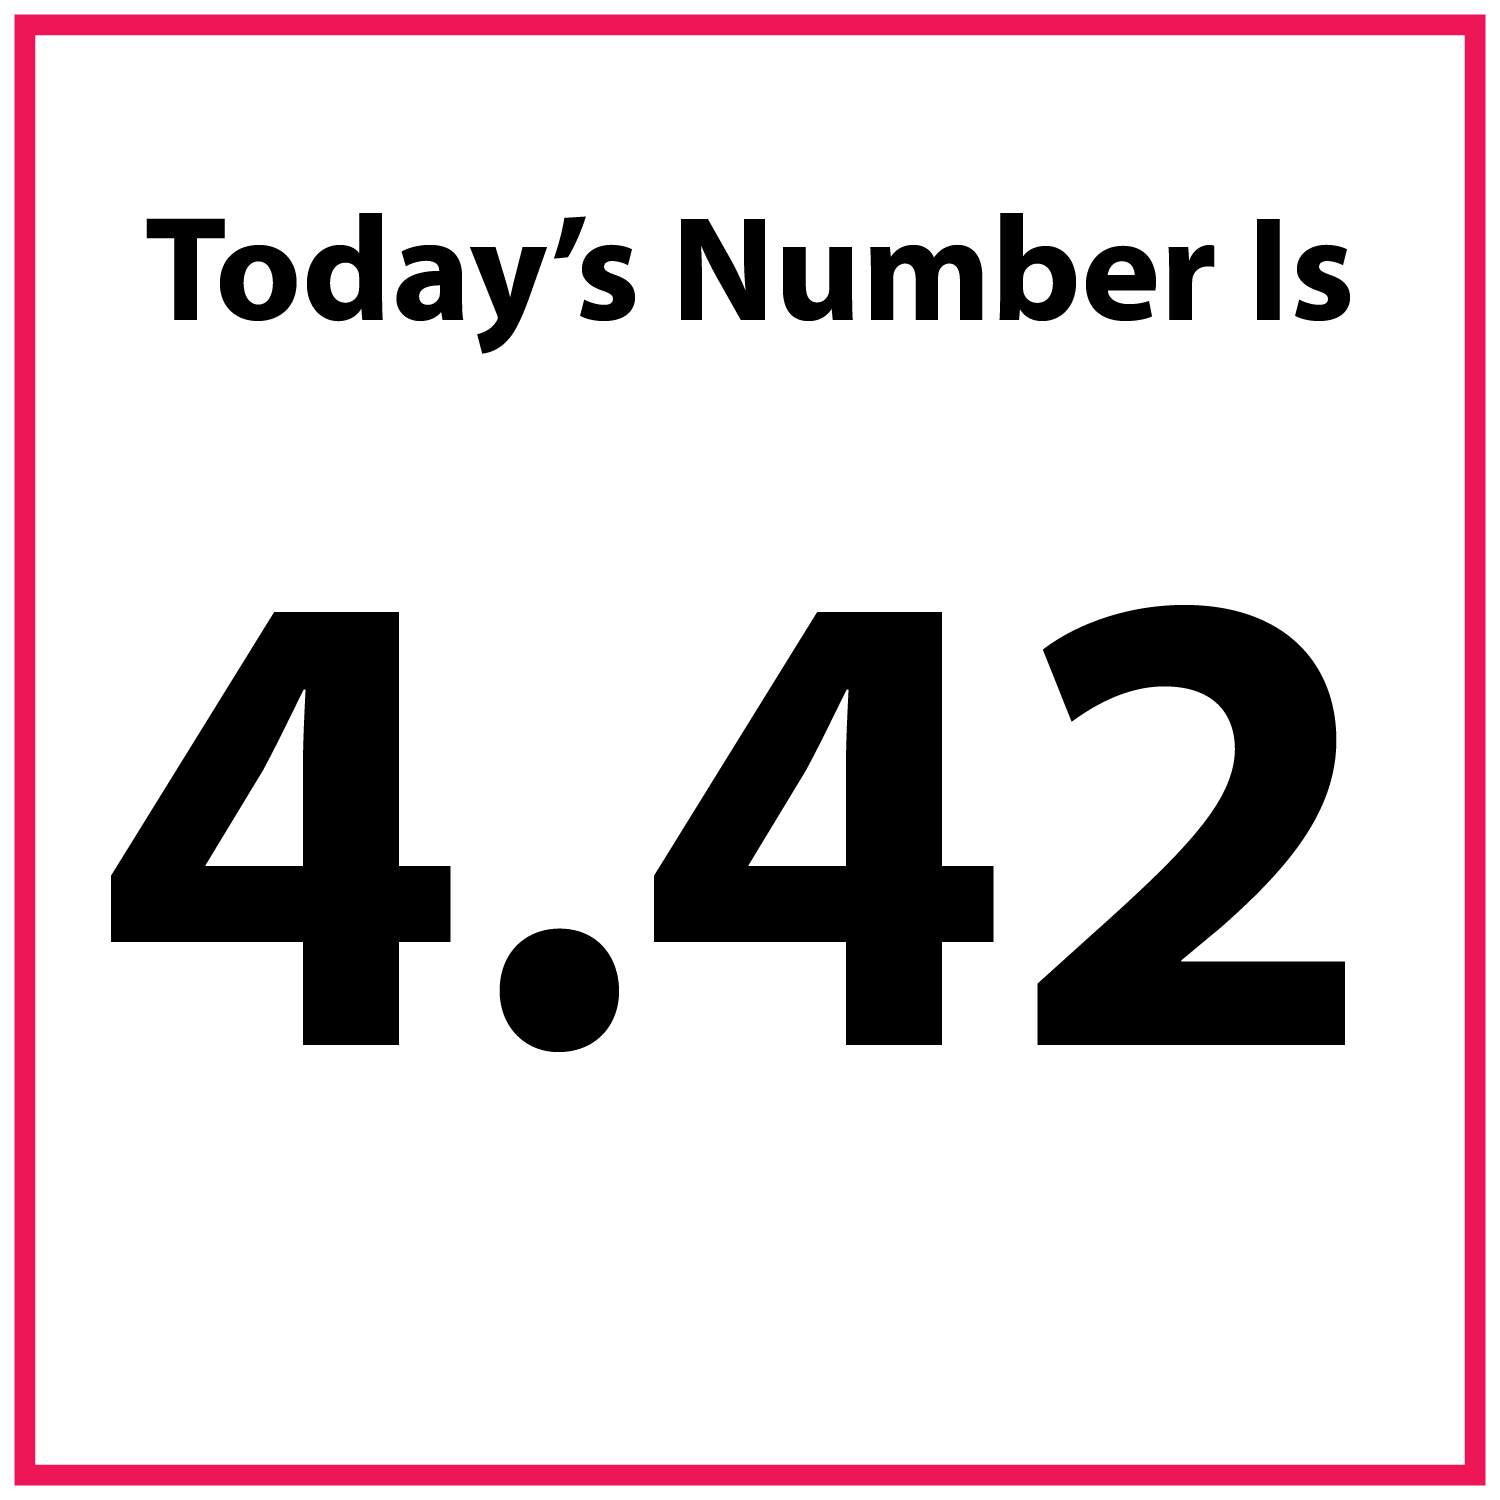 Today's number is 4.42